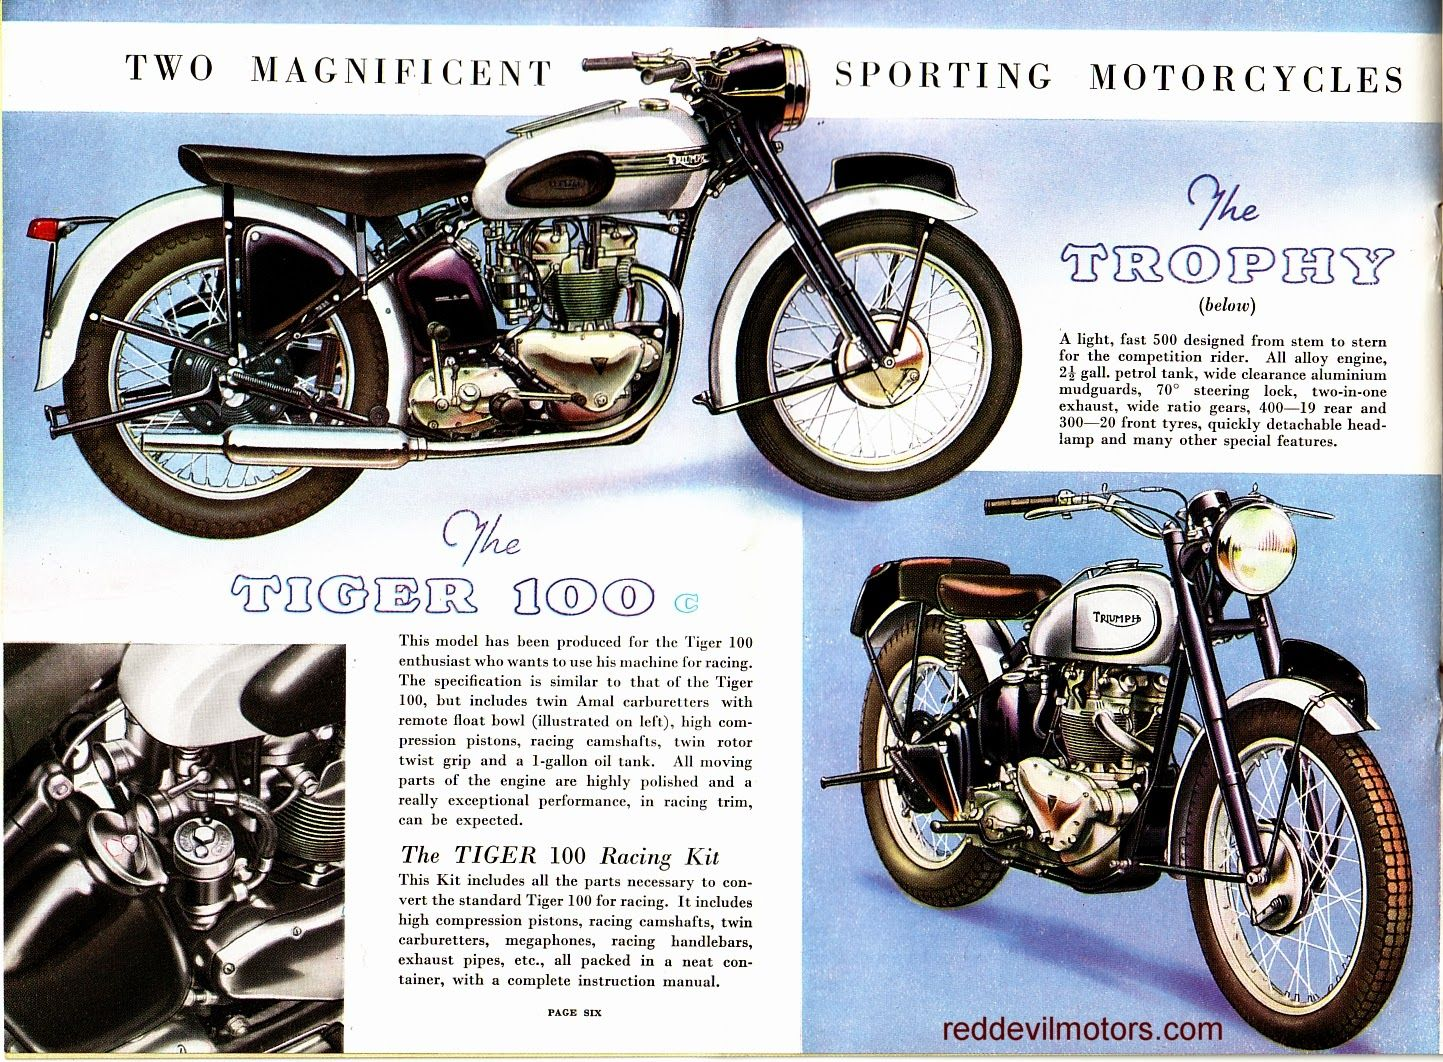 Vincent motorcycle brochure 1952 front cover - Red Devil Motors Triumph Motorcycles Brochure 1952